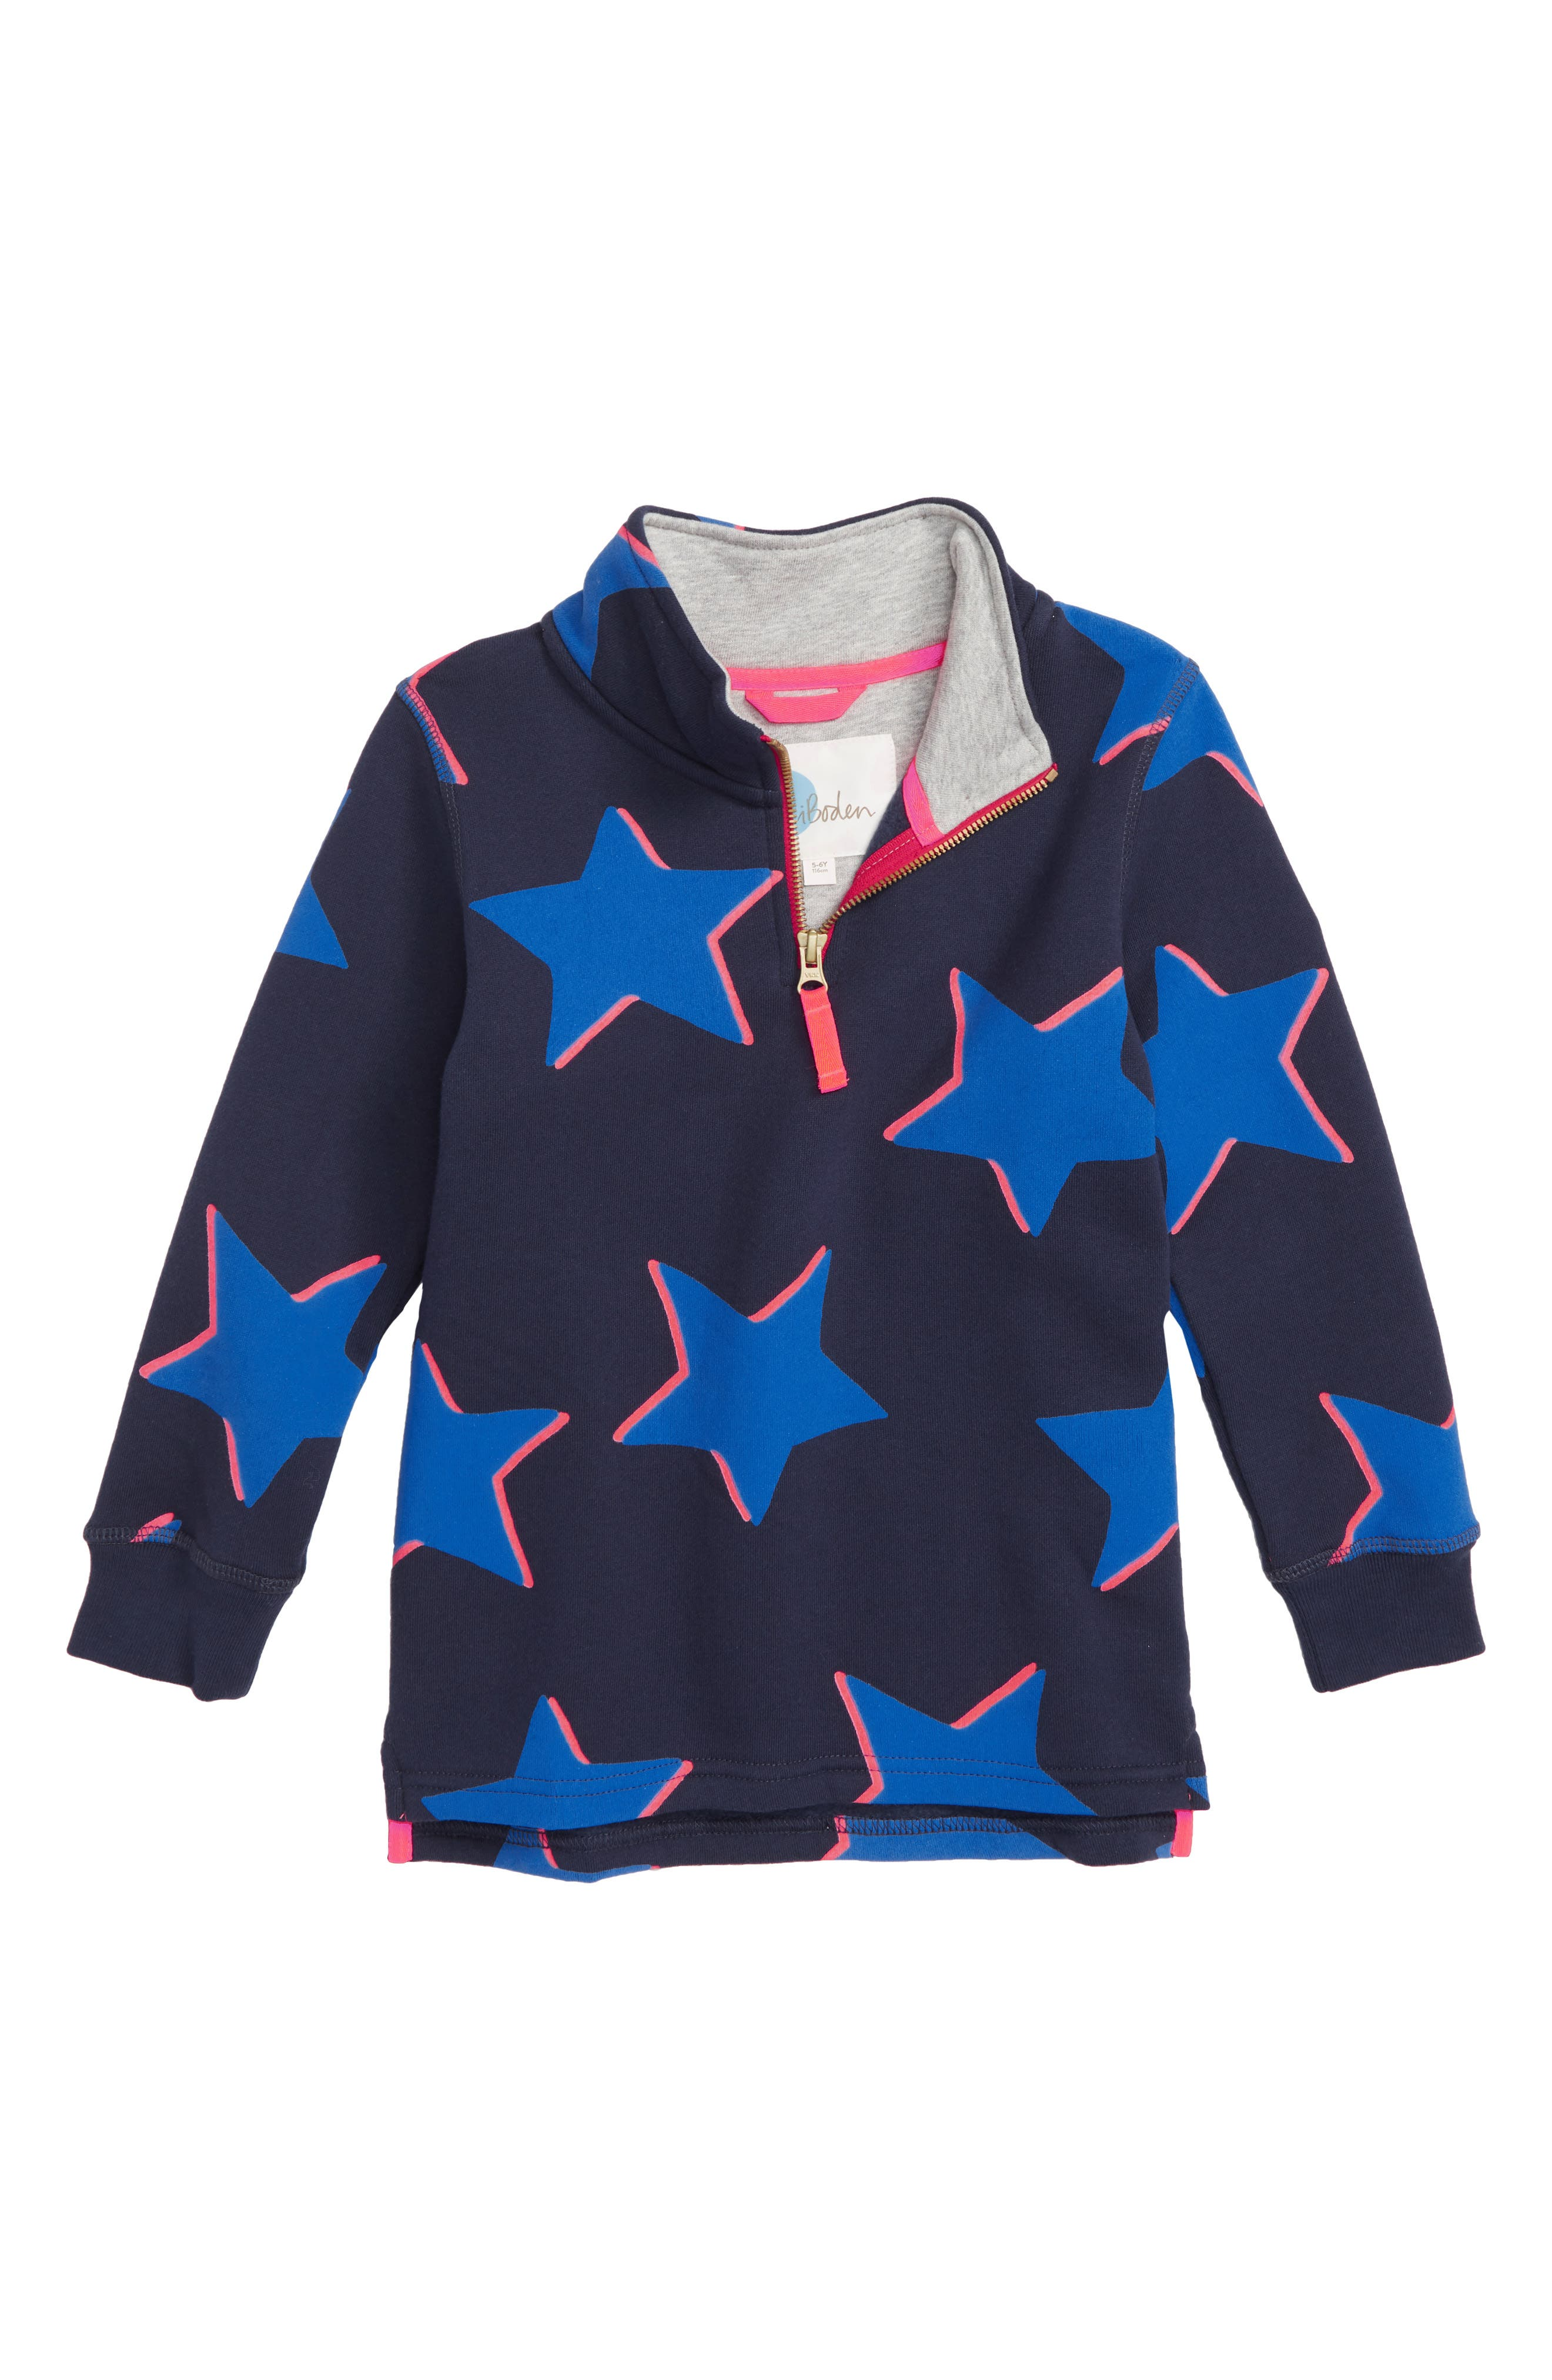 Shadow Star Half Zip Sweatshirt,                             Main thumbnail 1, color,                             414